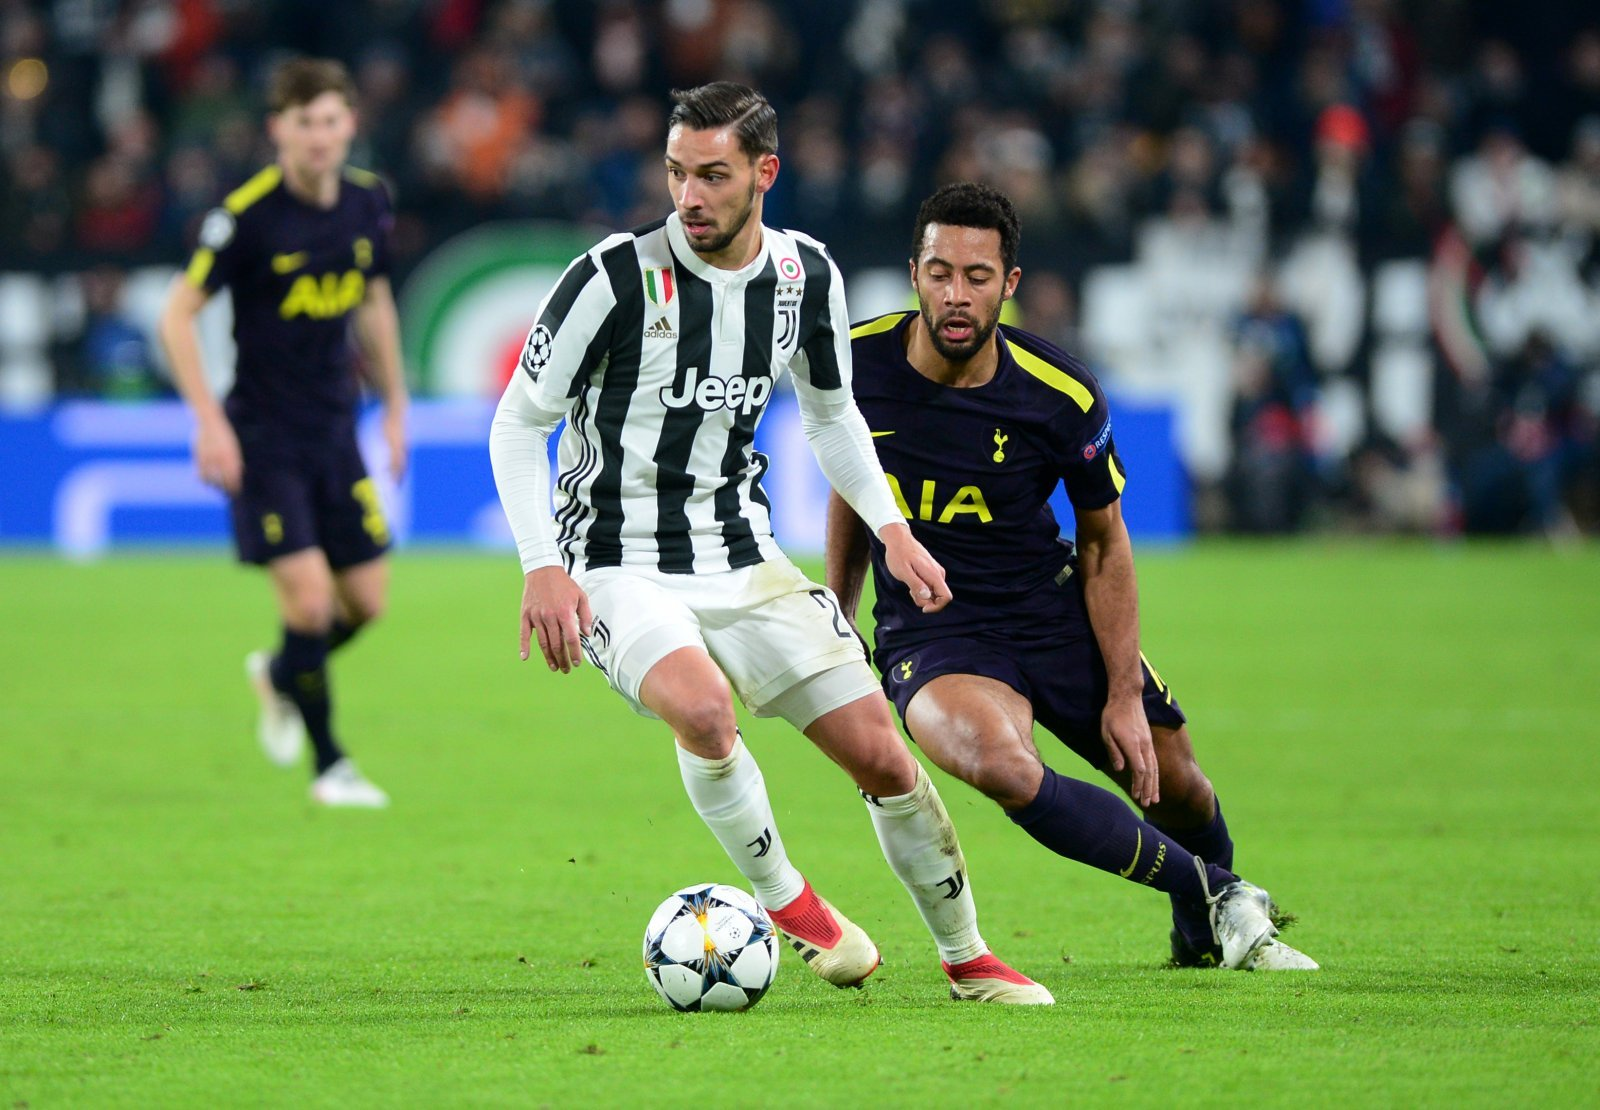 Juventus: Fans respond to reports that De Sciglio could be moving